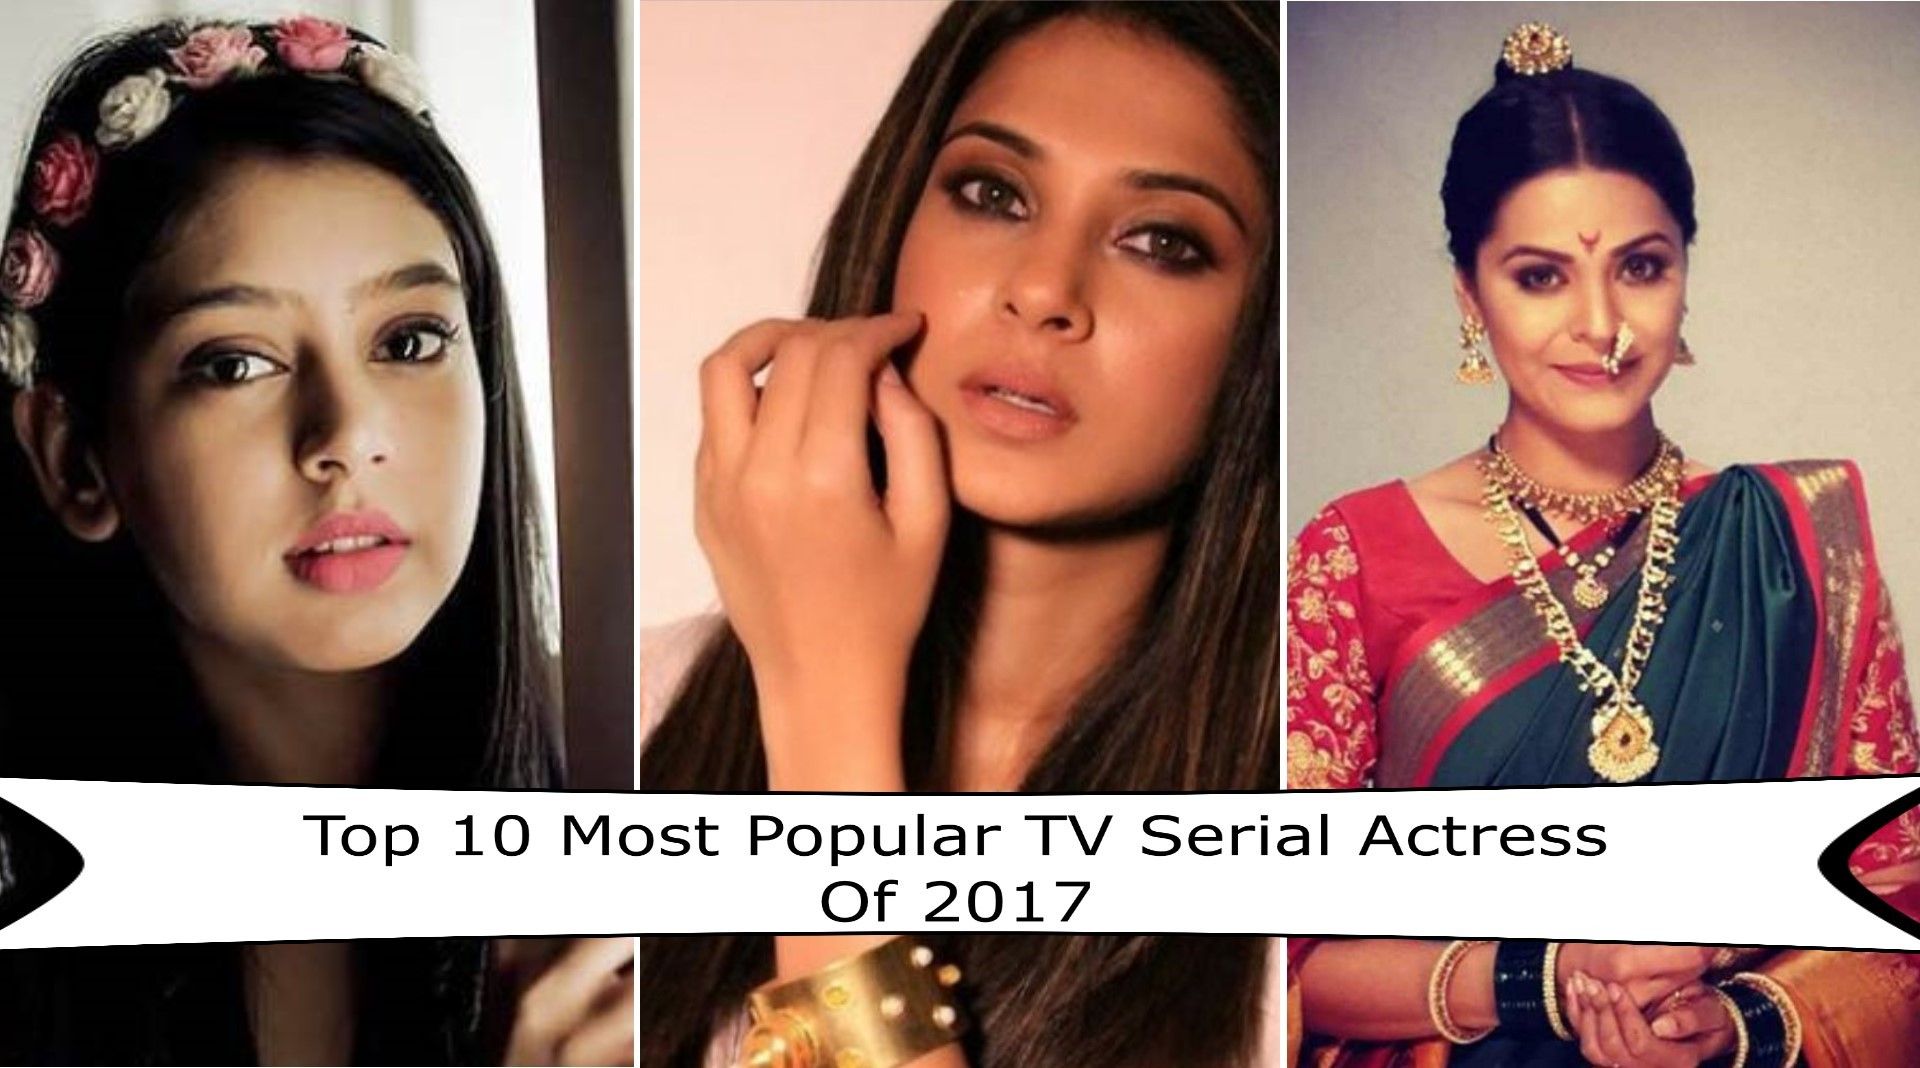 top 10 most popular tv serial actress of 2017 let us publish